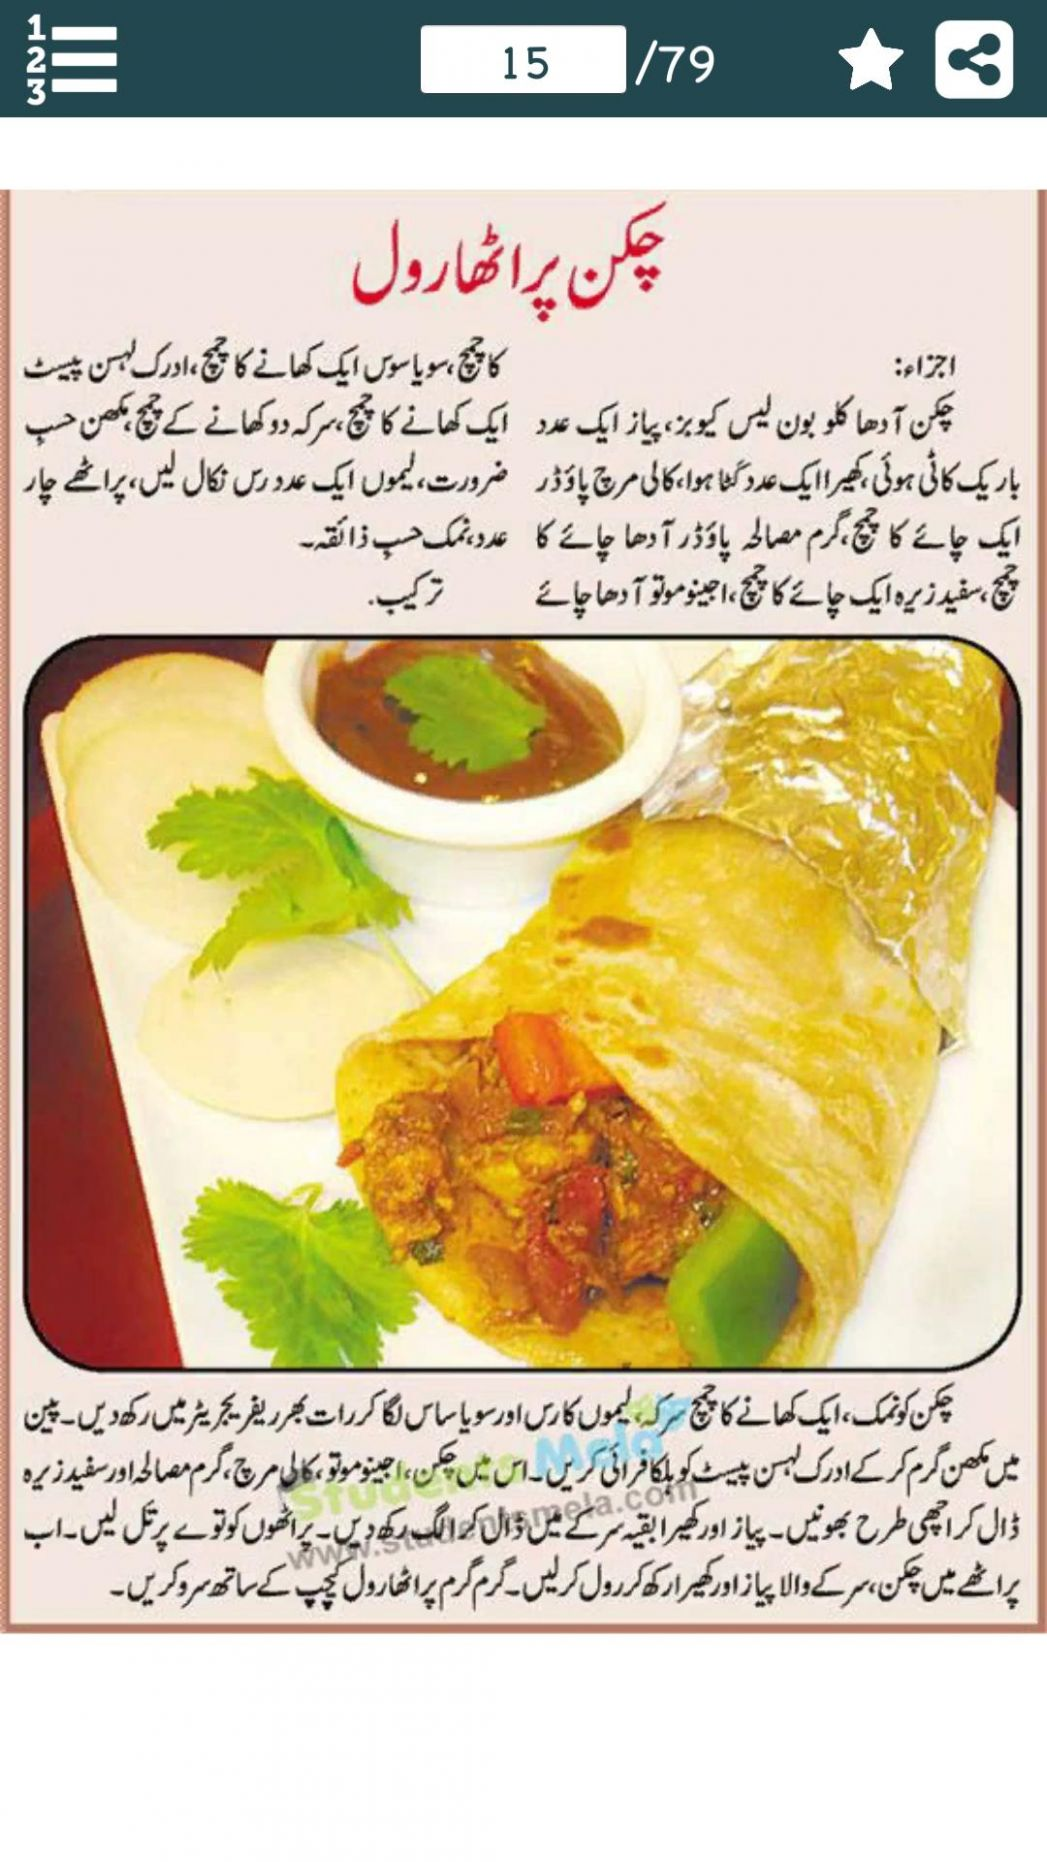 Pakistani Easy Recipes in URDU for Android - APK Download - Urdu Recipes Easy